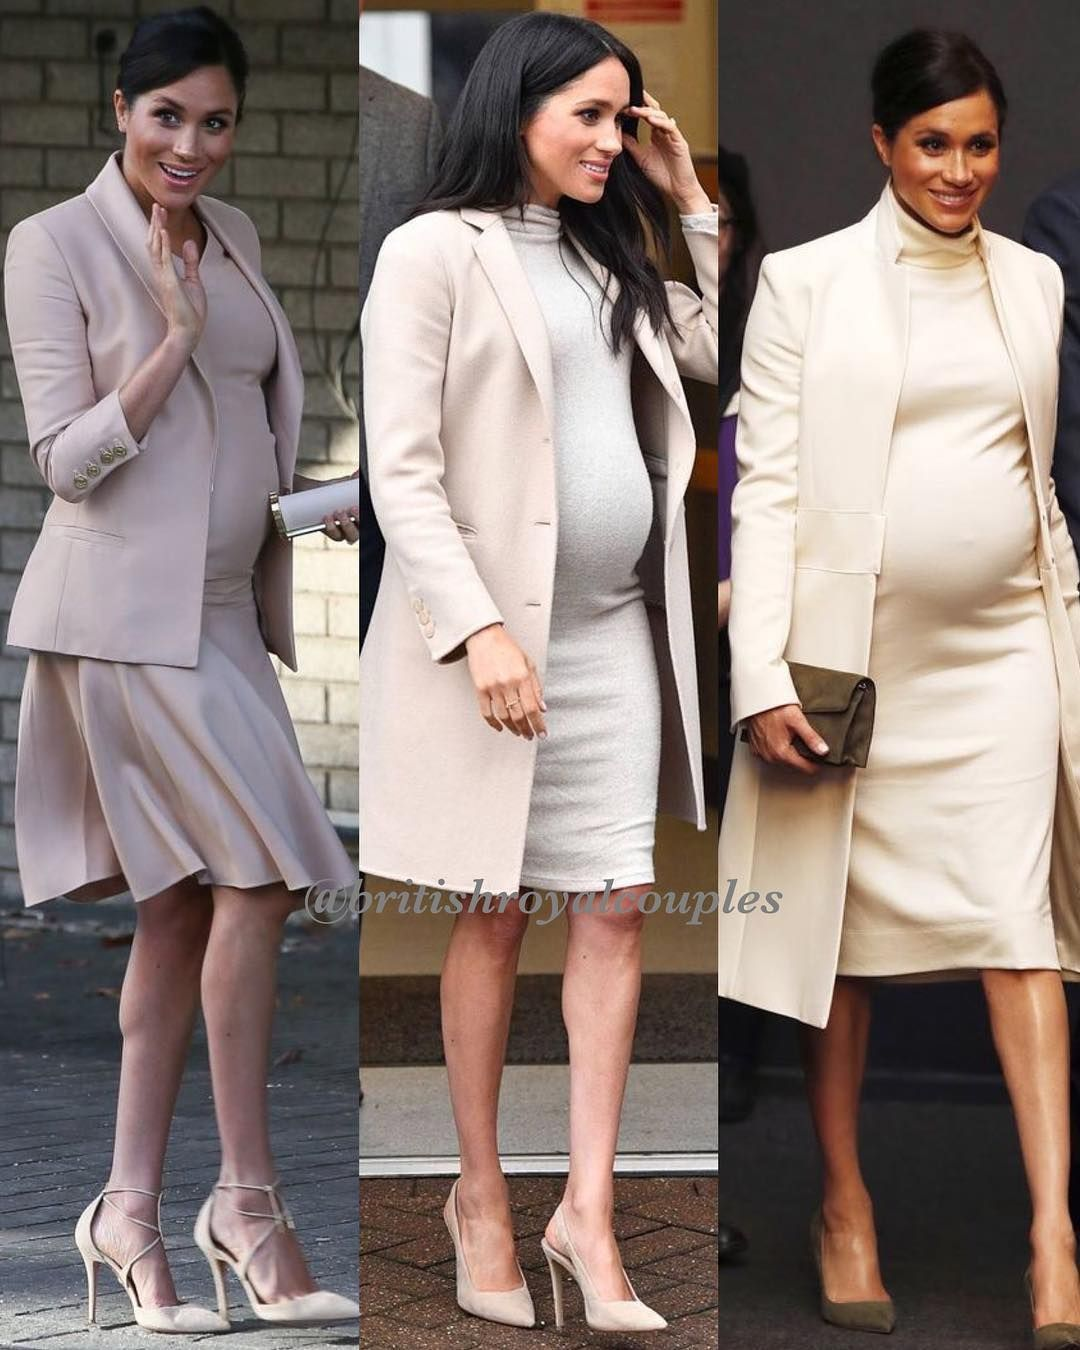 a67c7187454  RoyalStyle 🤰🏻Duchess Meghan s pregnancy style. All her looks were  beautiful but these are the 9 outfits that I liked the most! What are…